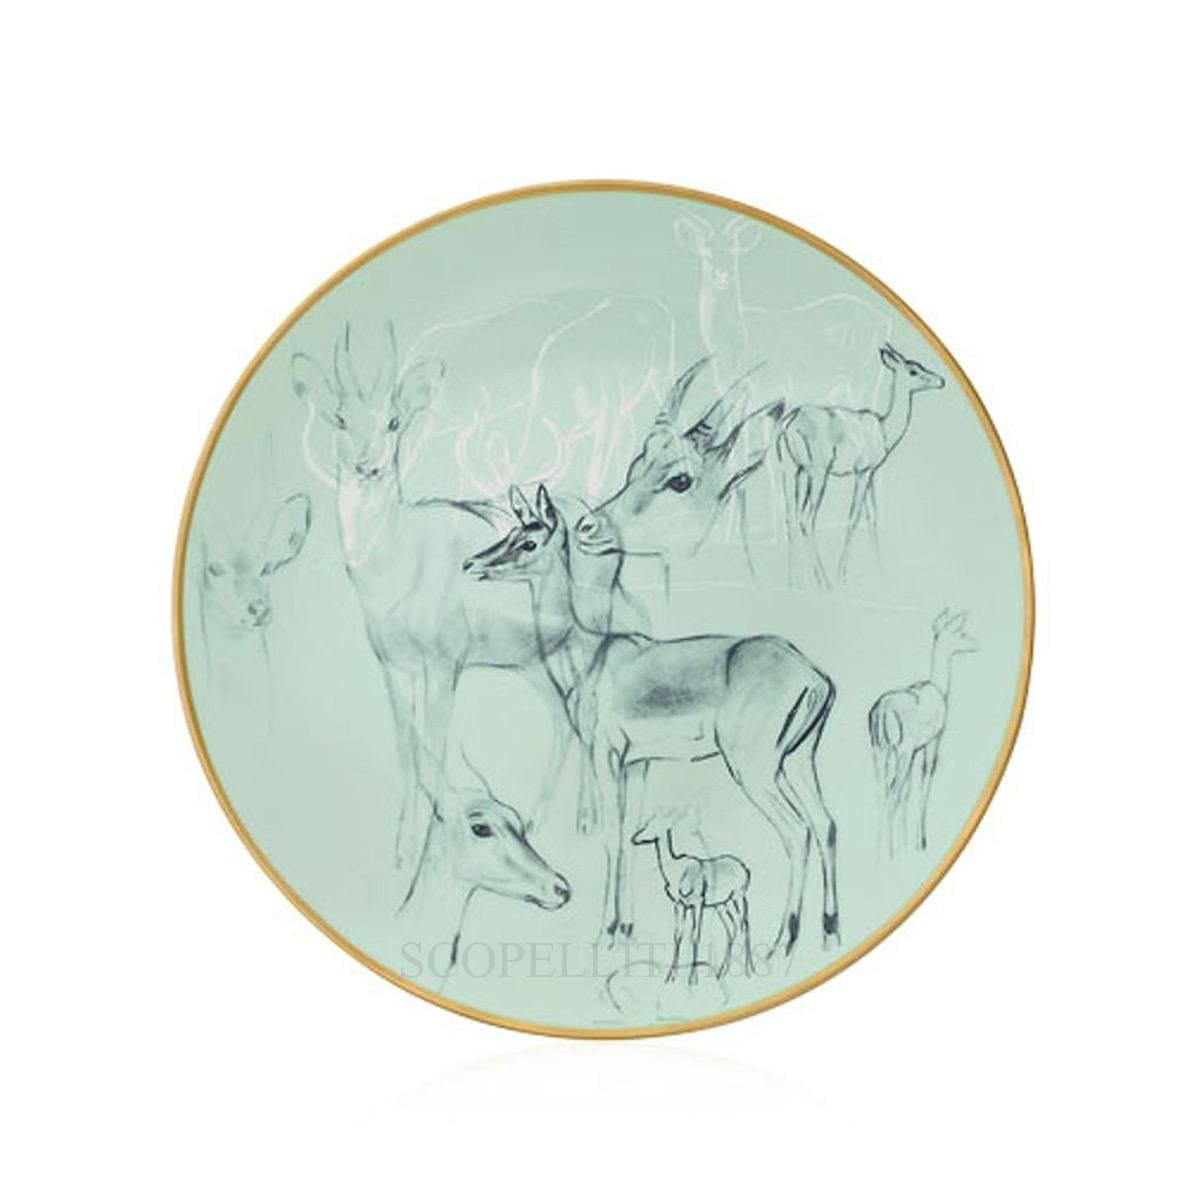 hermes paris carnets equateur bread and butter plate impalas theme